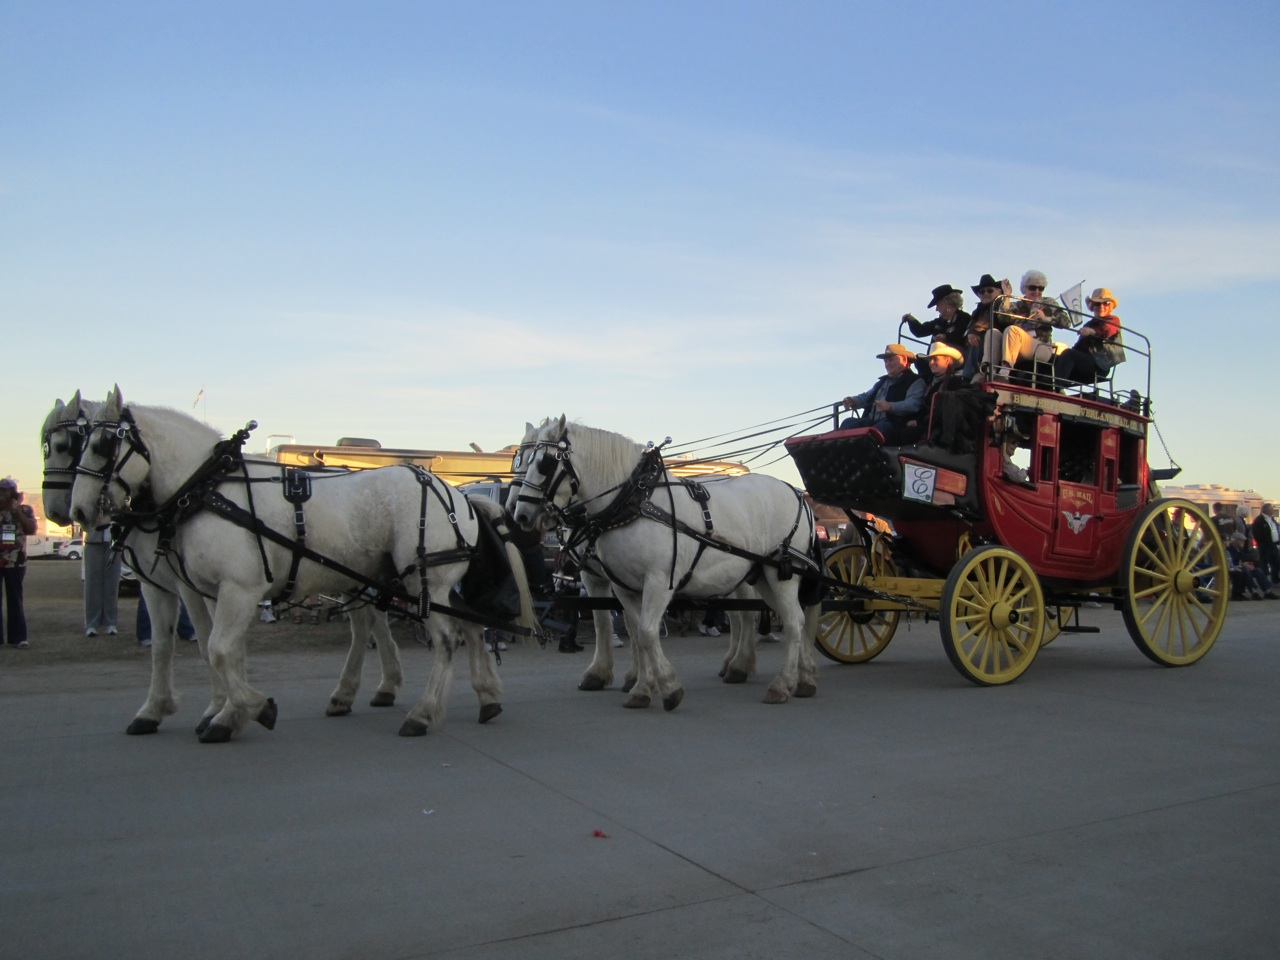 The Show Stopper. A Real Stage Coach And Horses.